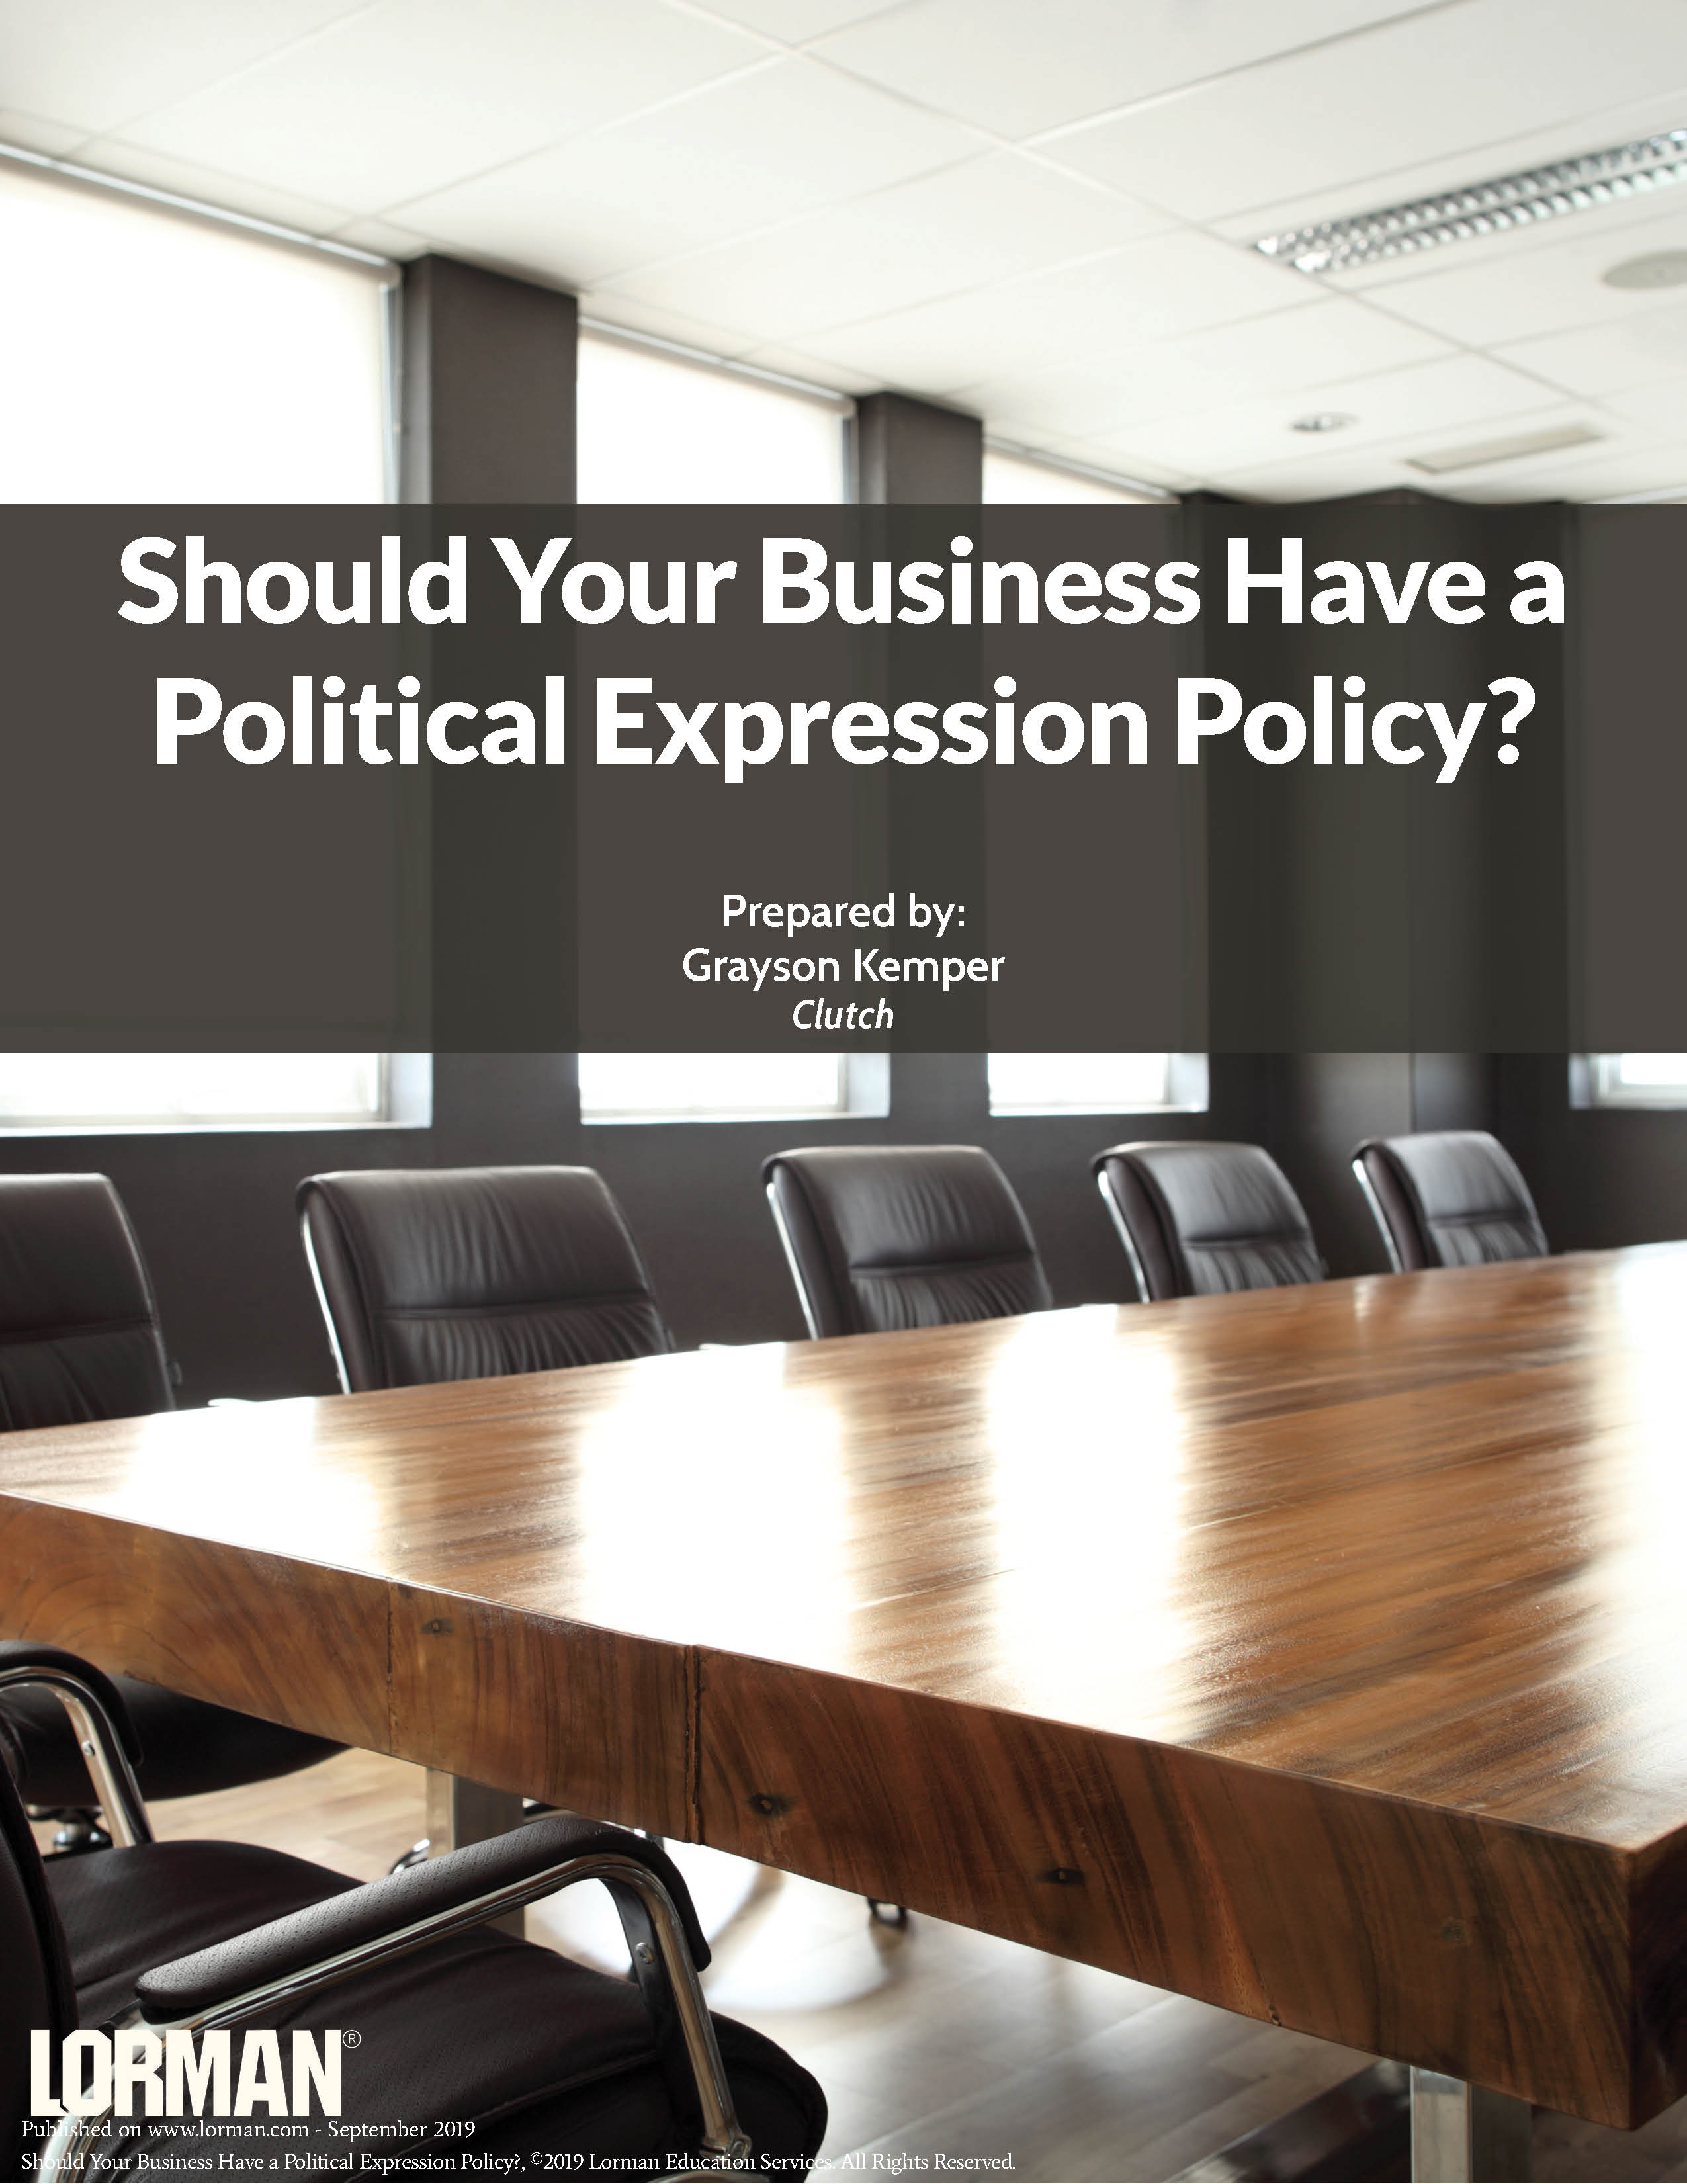 Should Your Business Have a Political Expression Policy?